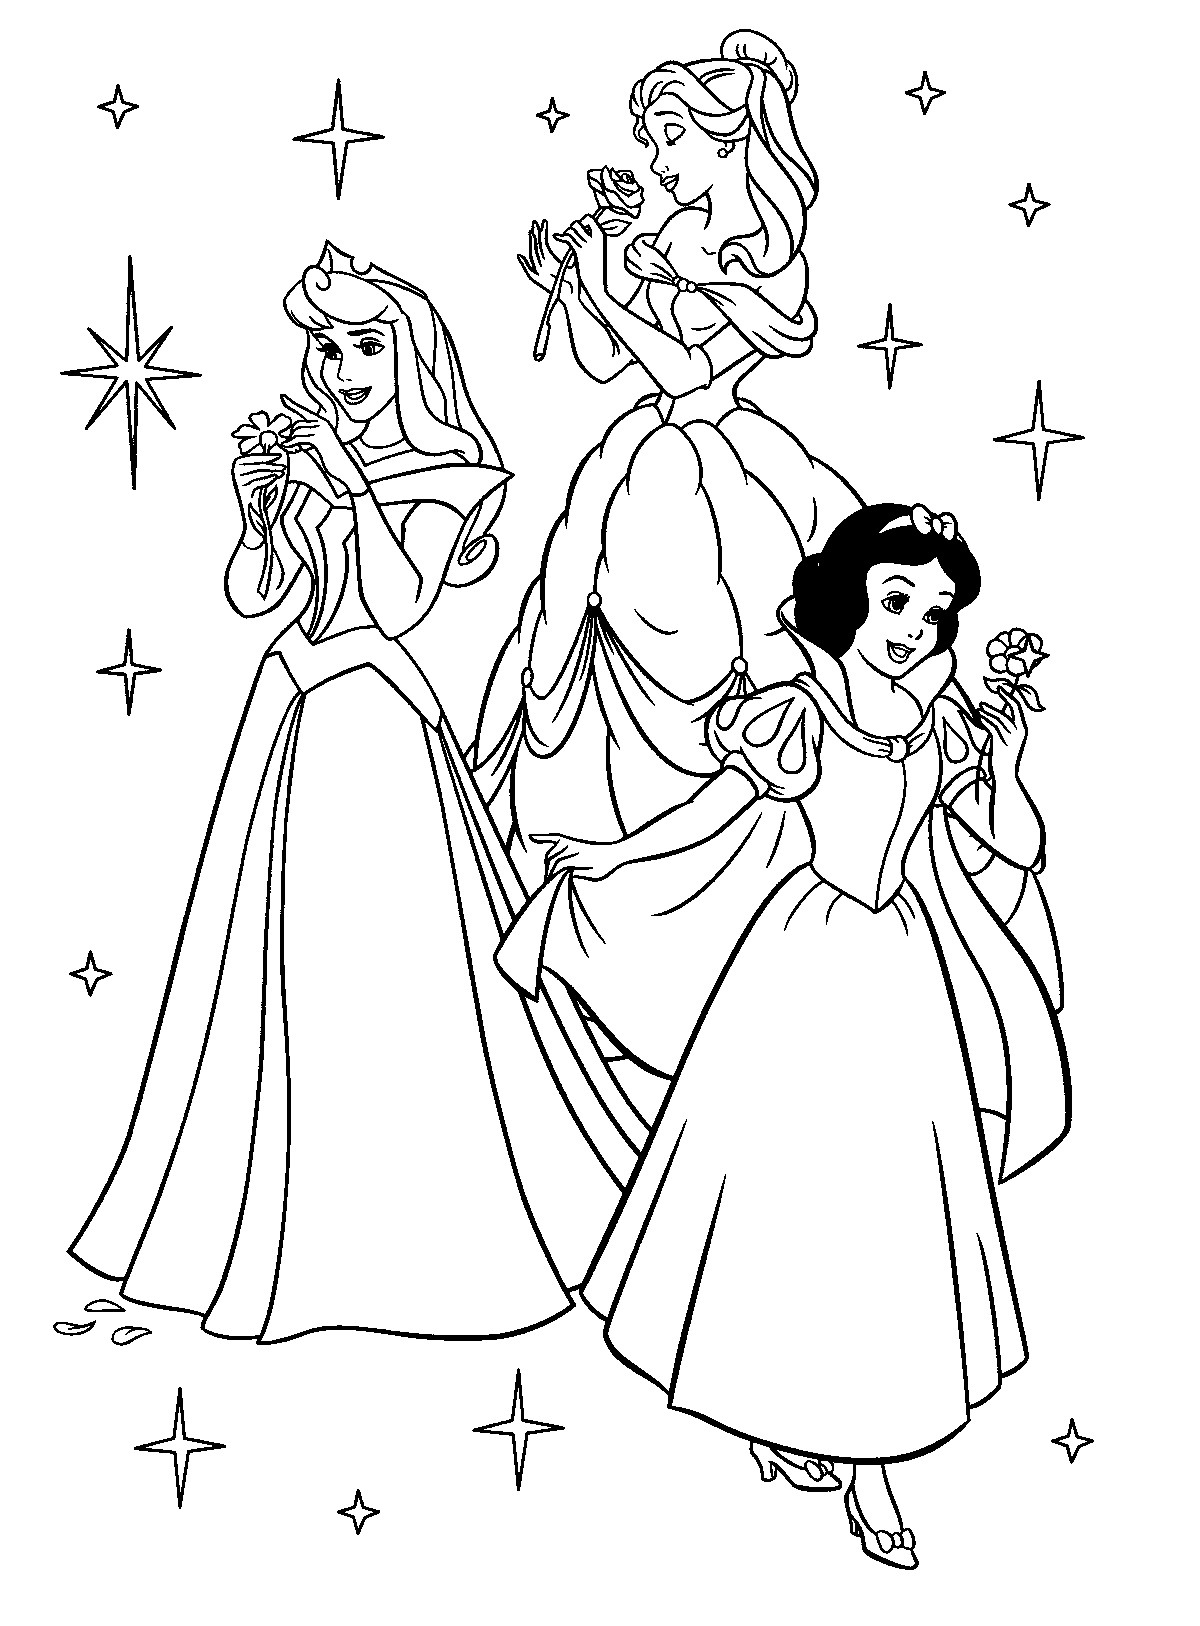 Online Coloring Sheets For Kids  Princess Coloring Pages Best Coloring Pages For Kids